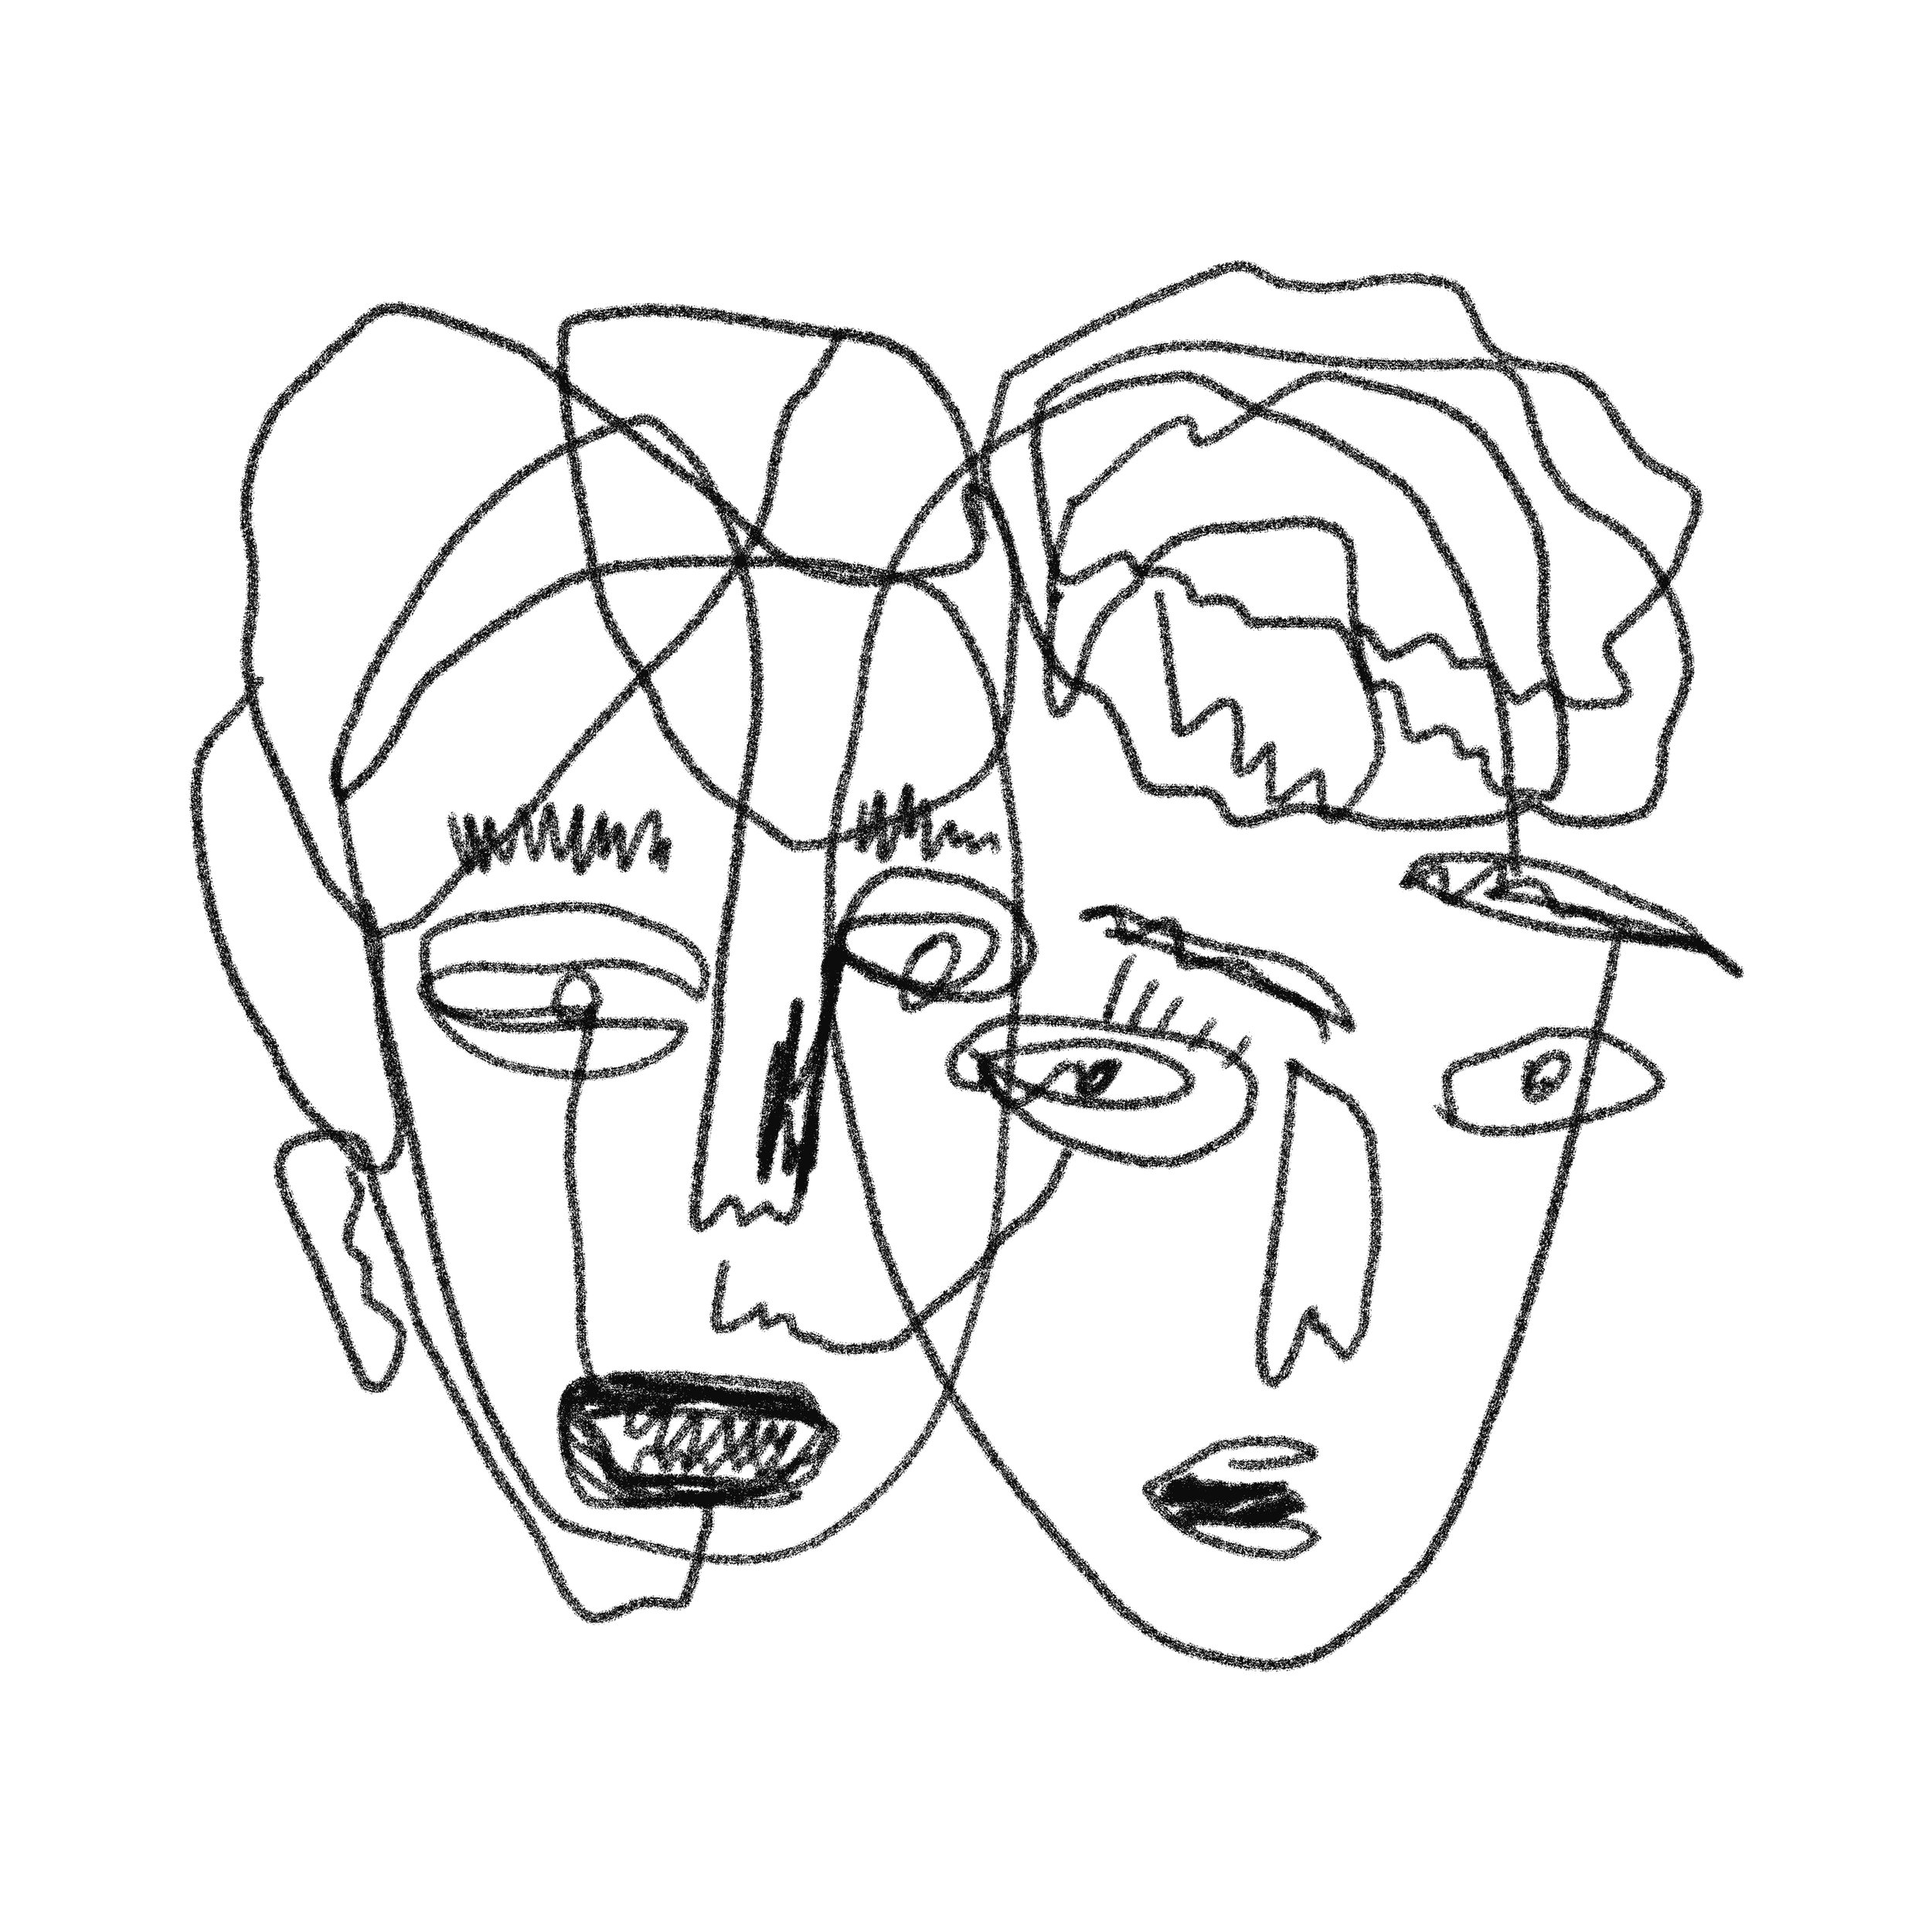 2faces-chalk-brush.jpg